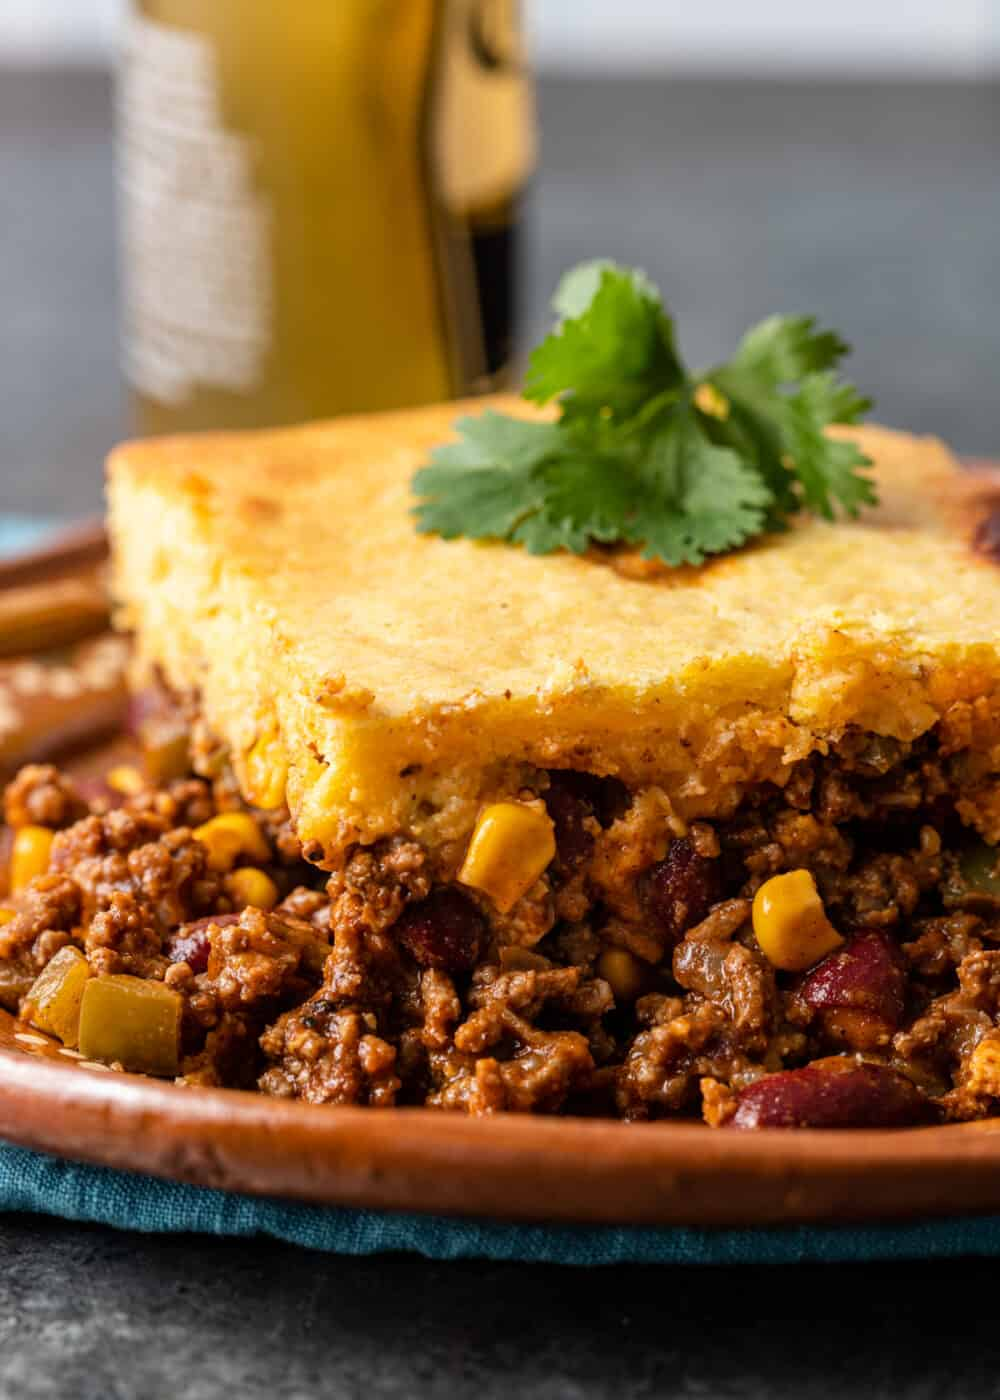 side view: serving of tamale casserole on brown plate